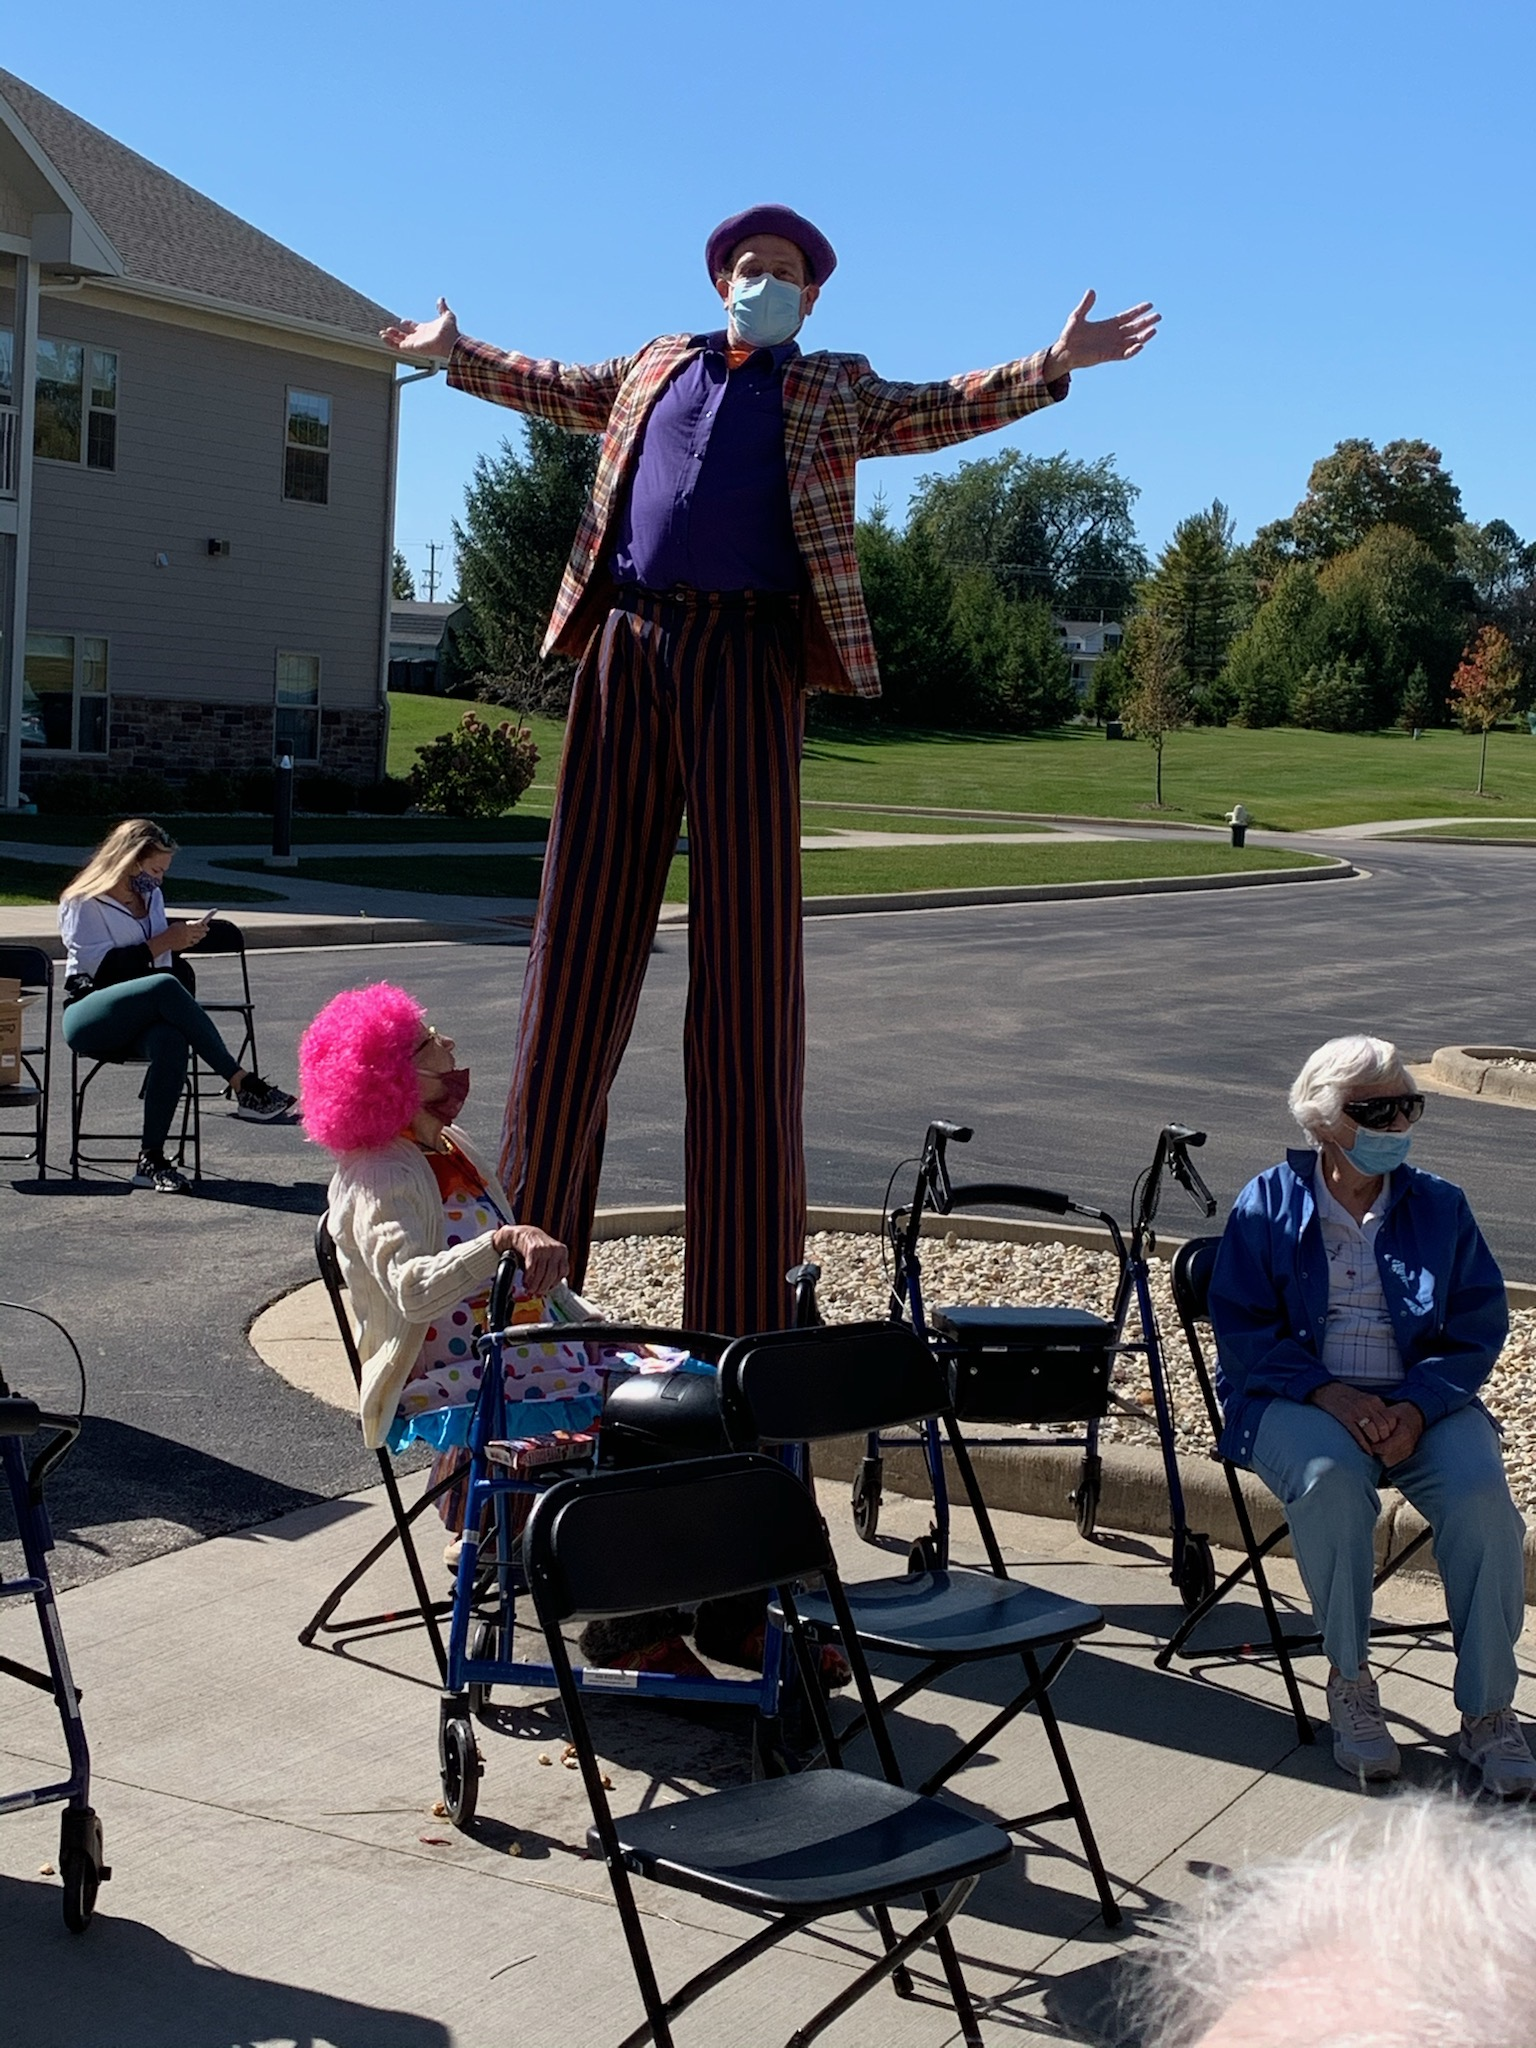 We were happy to have Kevin Adair entertain us.  Kevin was the Stilt Walker in the movie